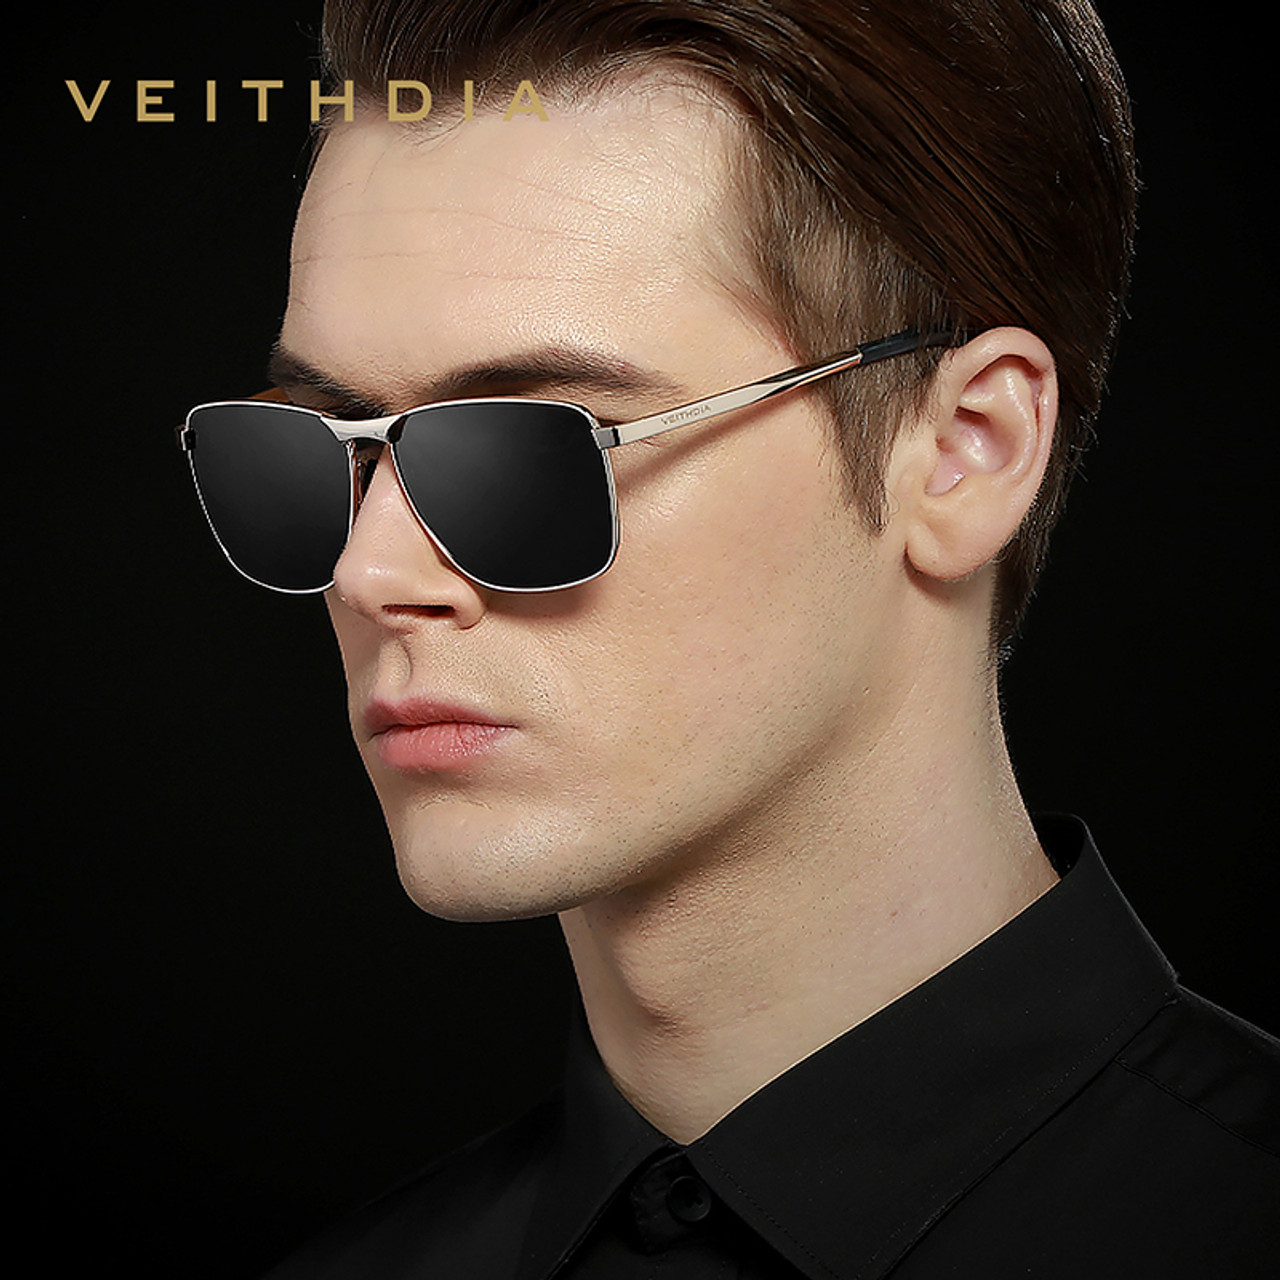 47076c3964 ... Veithdia 2018 Brand Designer Fashion Square Sunglasses Mens Polarized  Coating Mirror Sun Glasses Eyewear Accessorie For ...